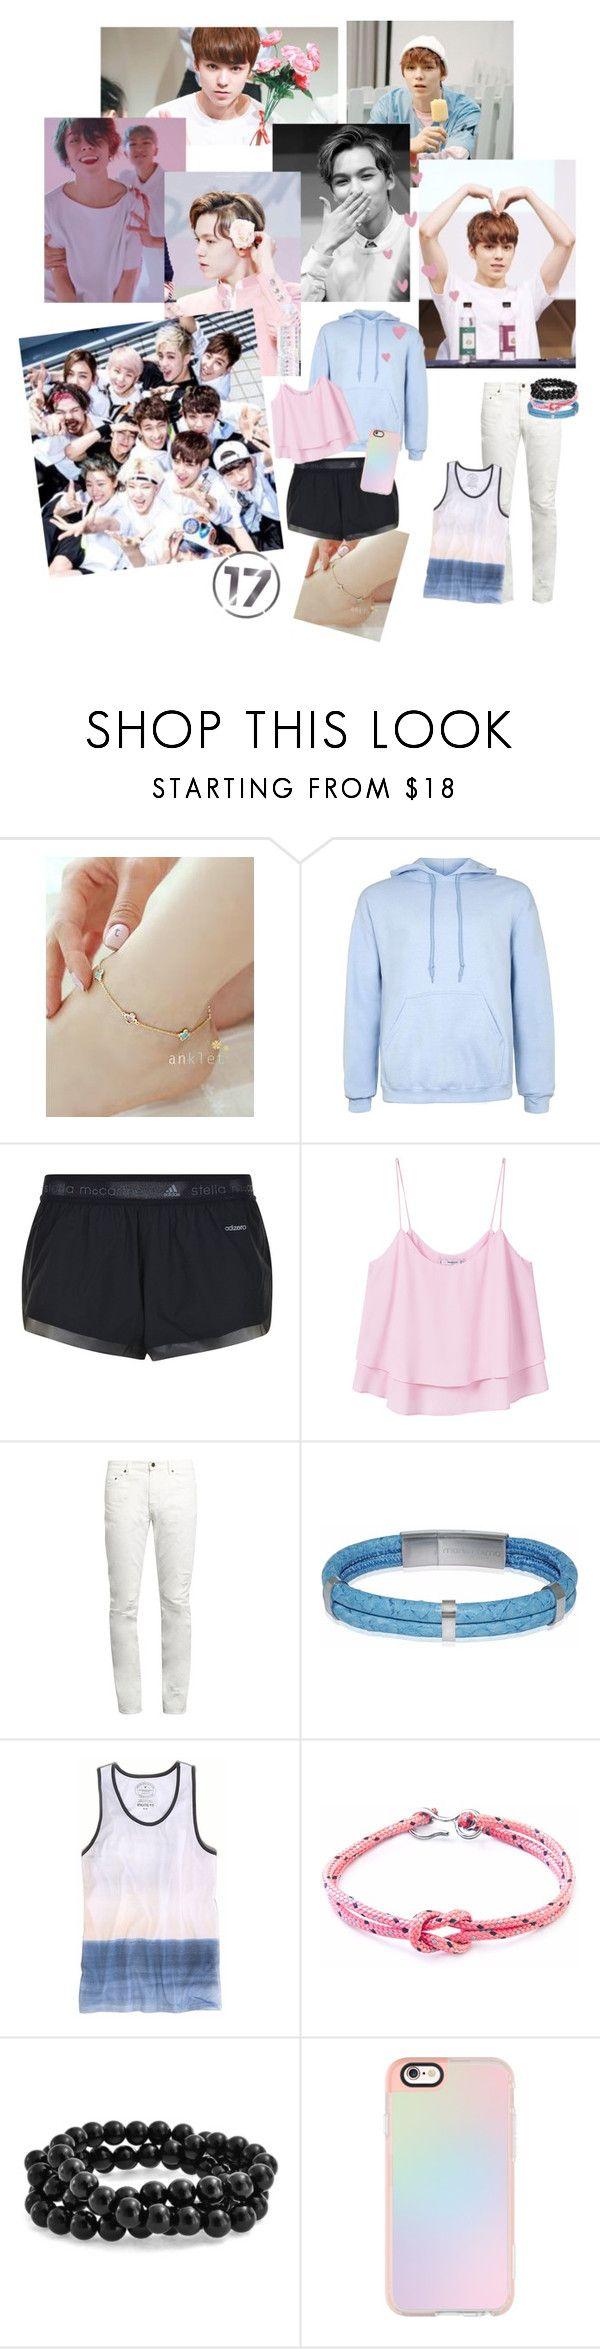 """""""Mint/Vernon Story Set 2"""" by samanthaking-plouff ❤ liked on Polyvore featuring Miss21 Korea, Topman, adidas, MANGO, Yves Saint Laurent, Marlín Birna, American Eagle Outfitters, Anchor & Crew, Bling Jewelry and Casetify"""